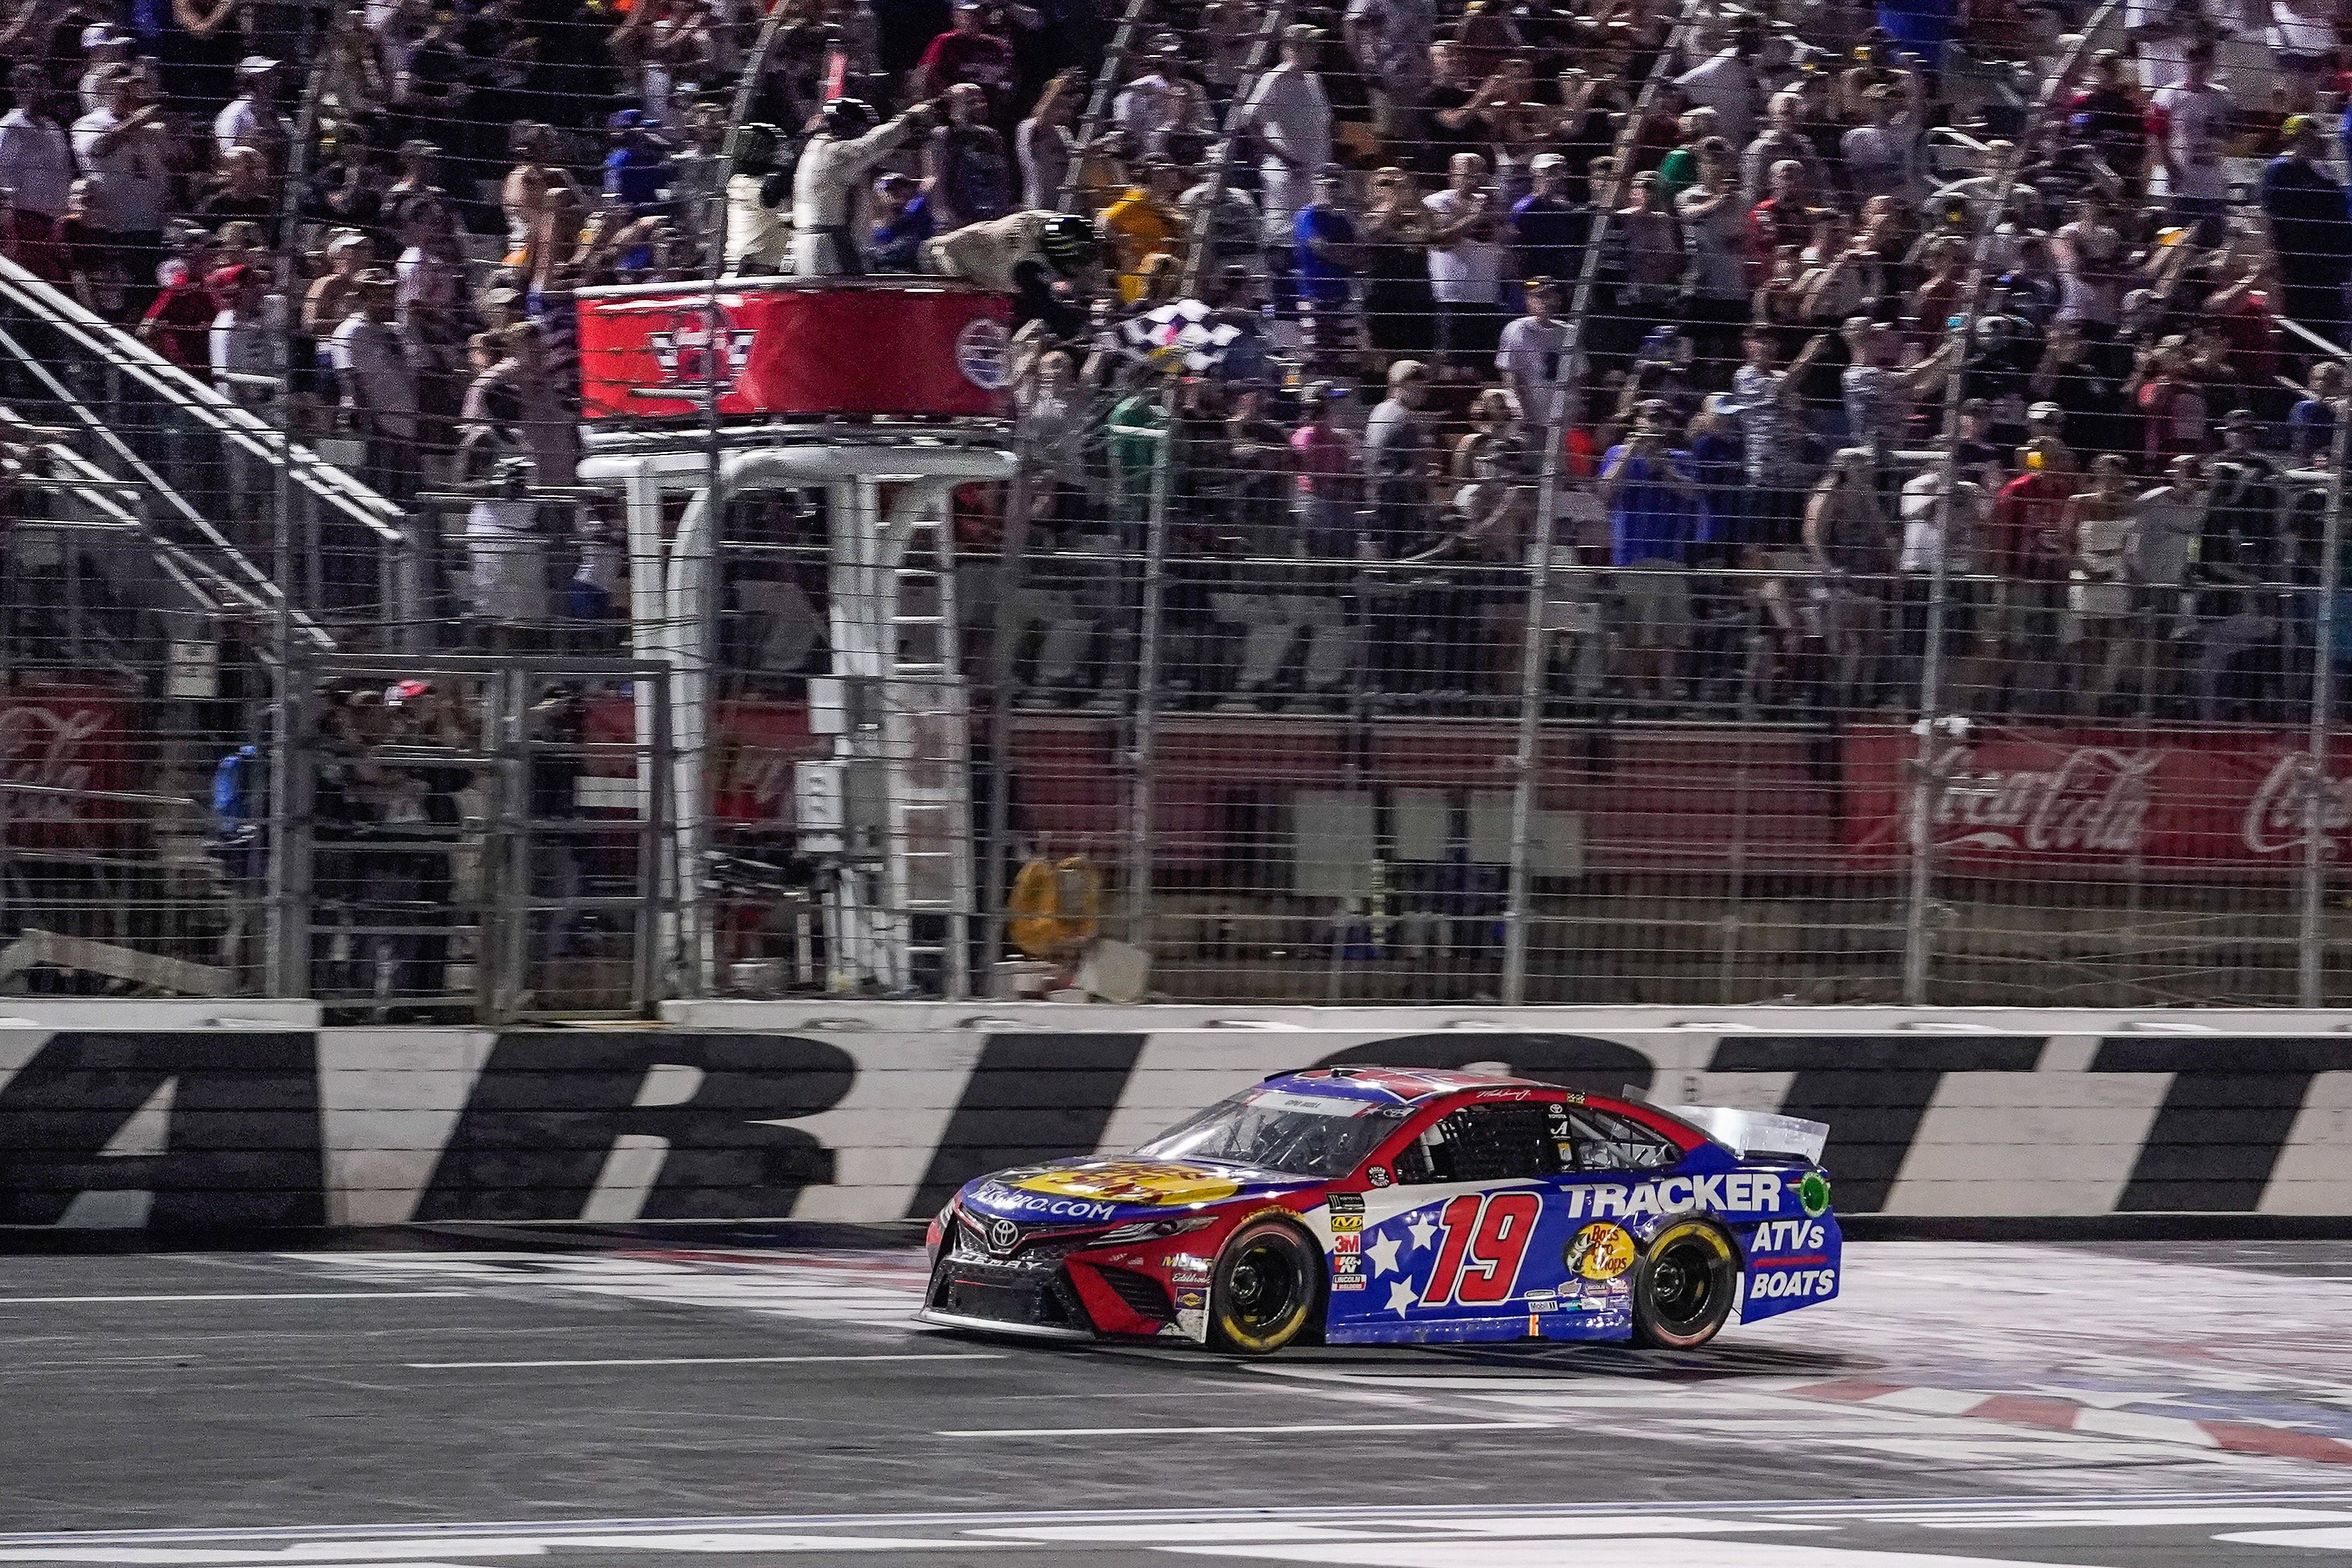 NASCAR at Charlotte: Start time, entry list, TV, radio schedule for the Coca-Cola 600